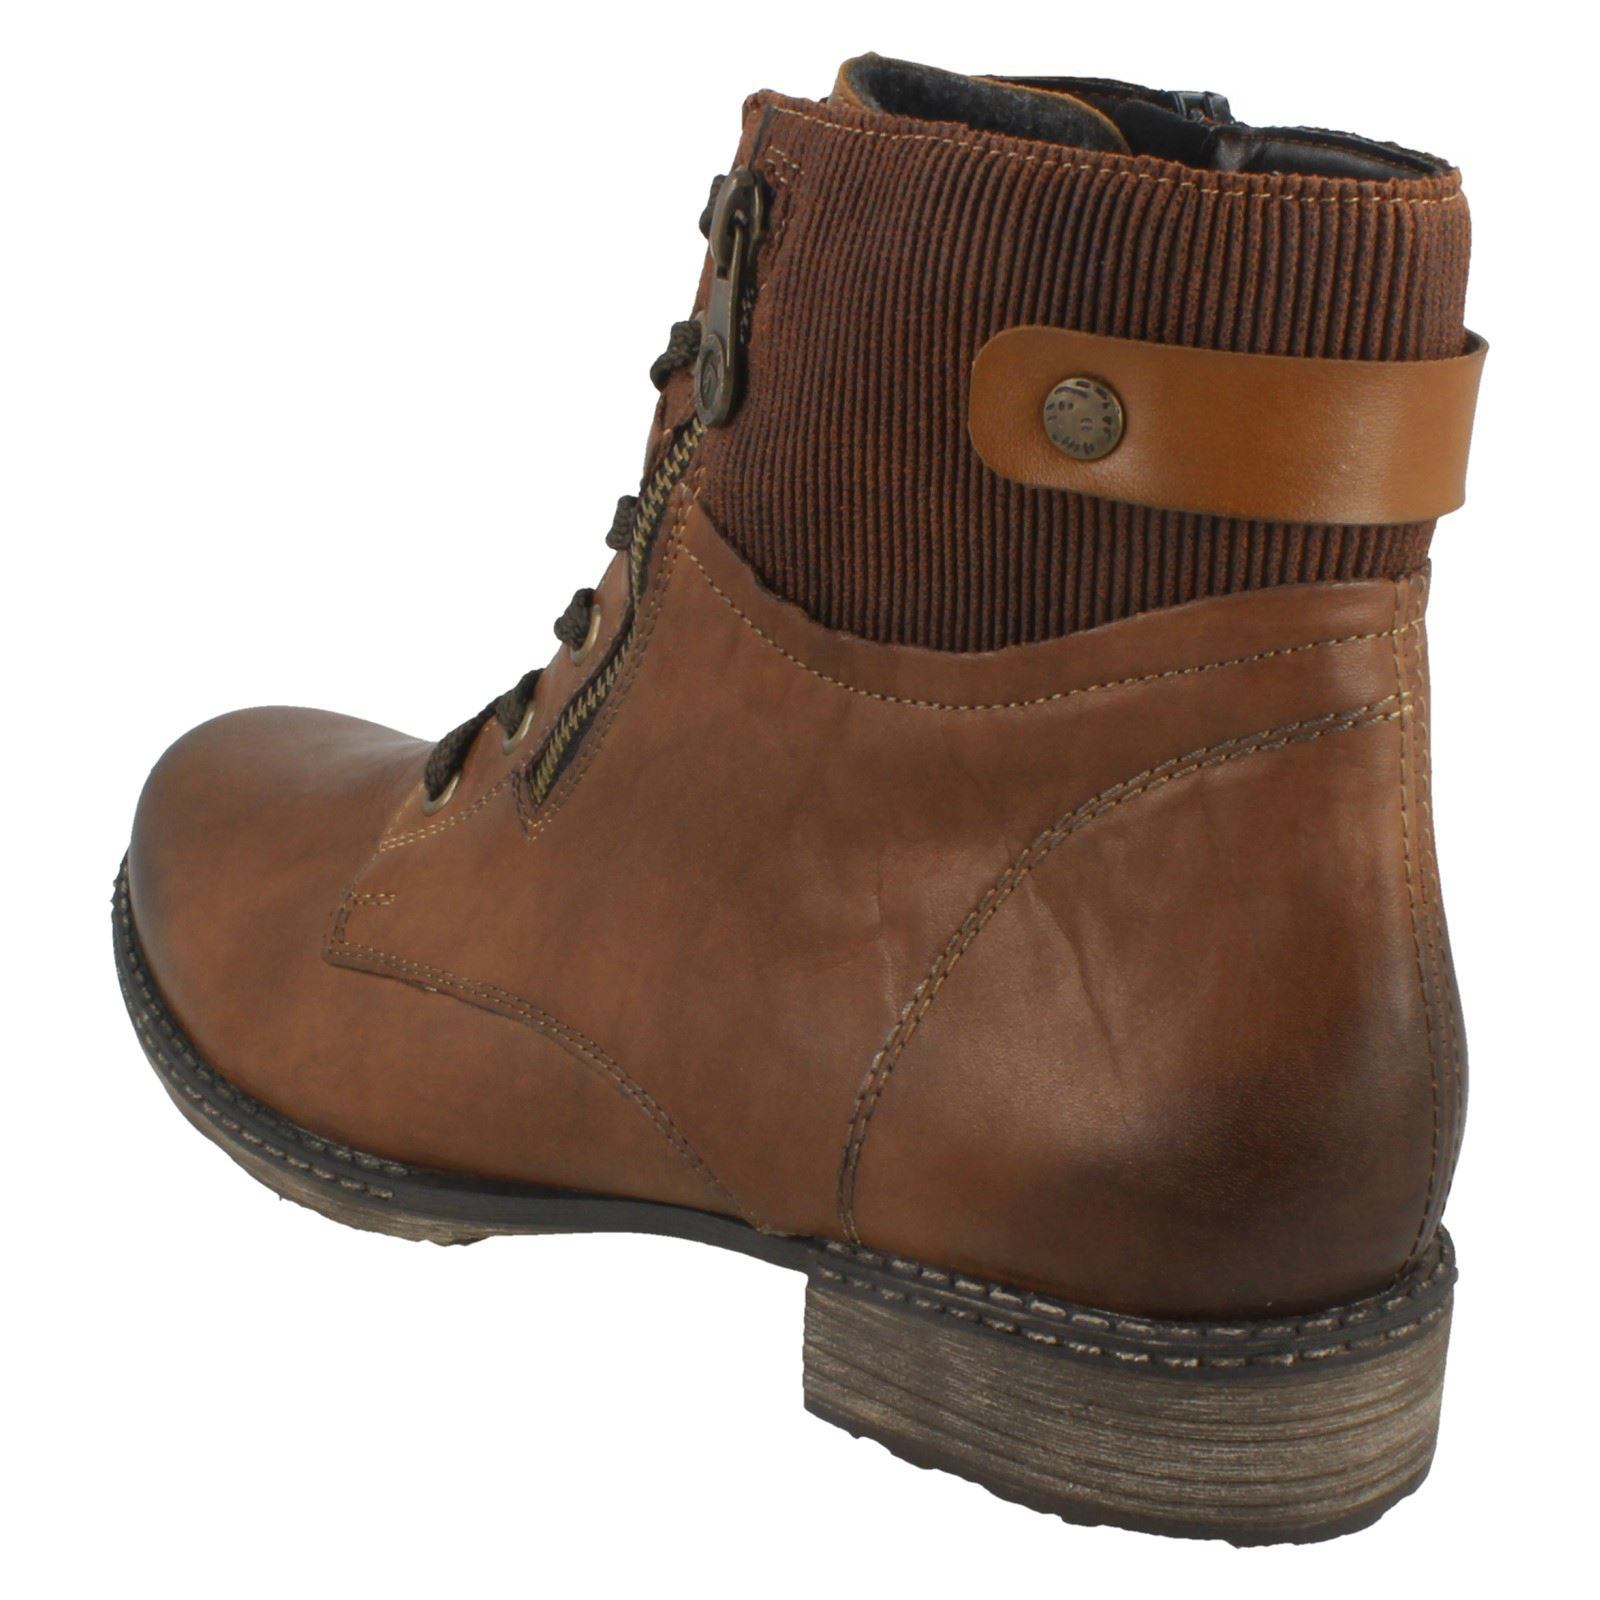 'd4379' Brown Remonte Ladies Ankle Boots nWPxAv